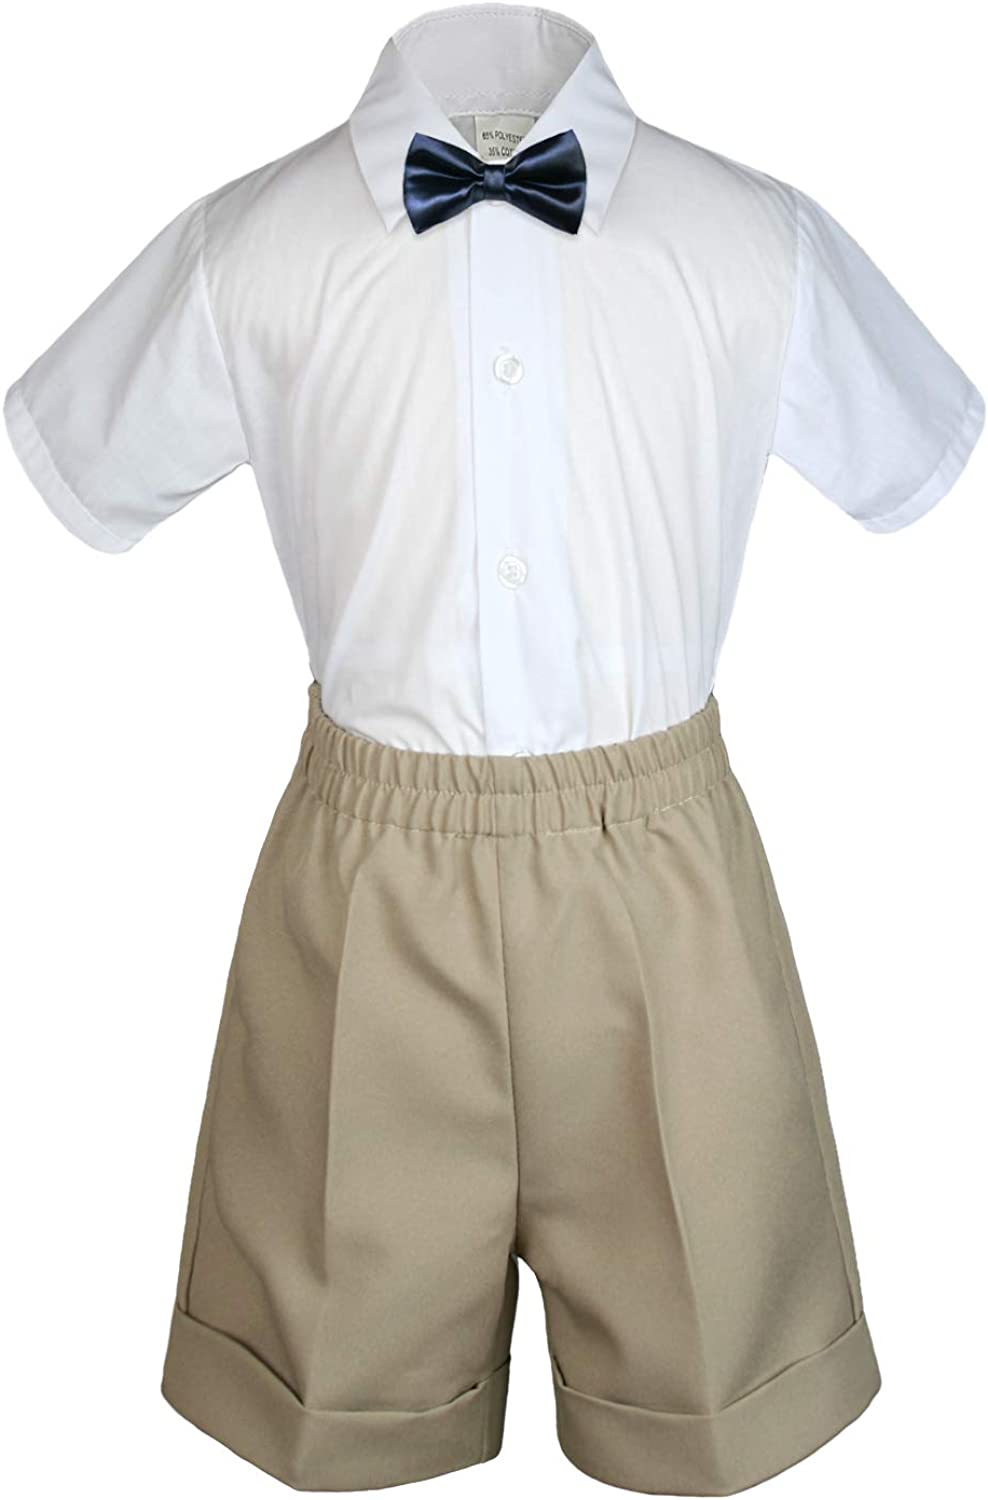 MILLTEX 3 Pieces Set Formal Party Wedding Color Satin Bow tie Shirt Khaki Shorts Set New Born Baby Boy Toddler Sm-4T